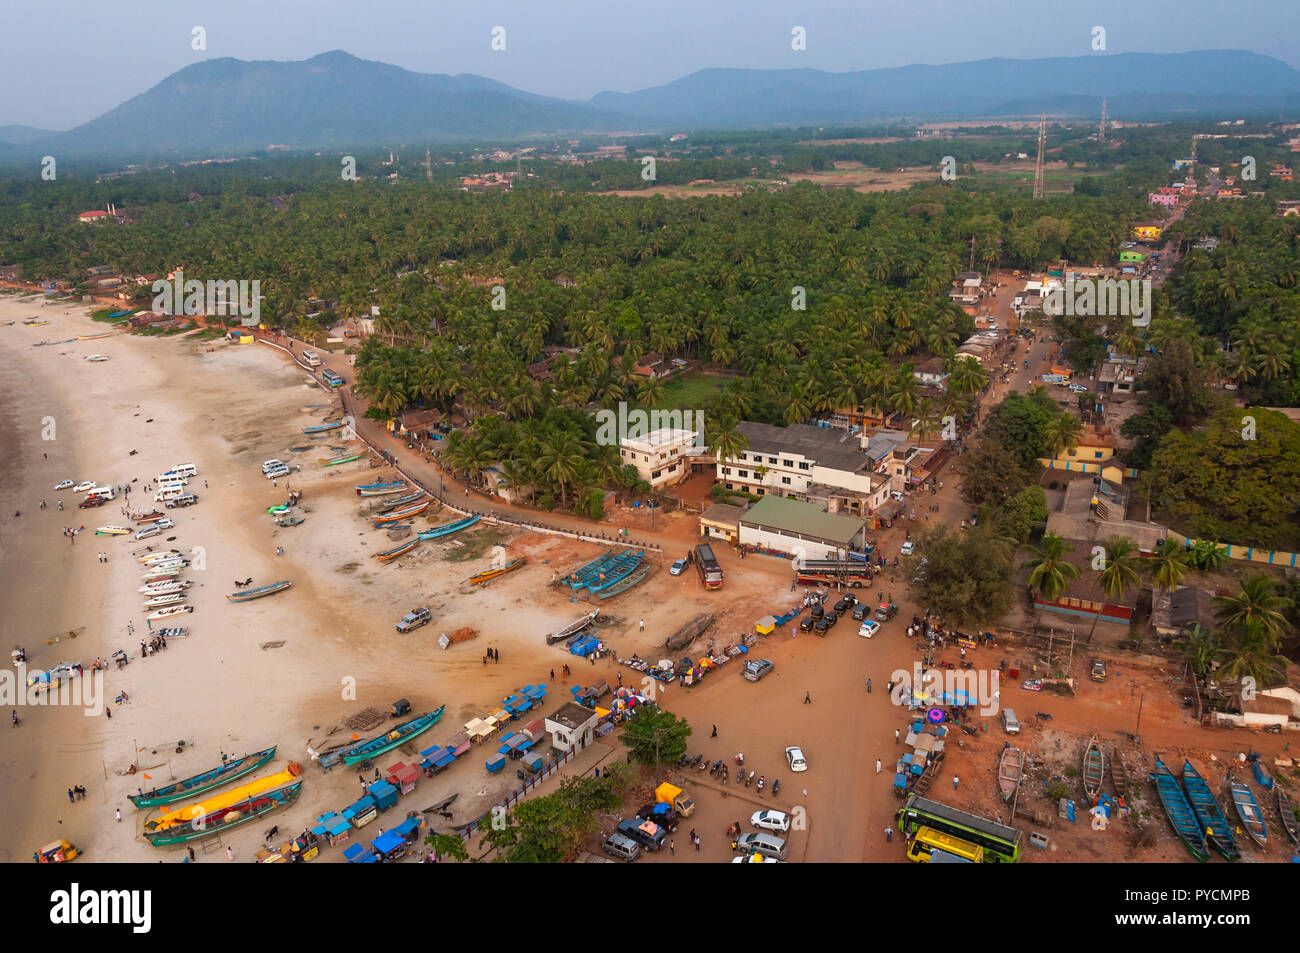 You can see here the Murudeshwar cityscape and citylife style and the level of life itself of course. - Stock Image